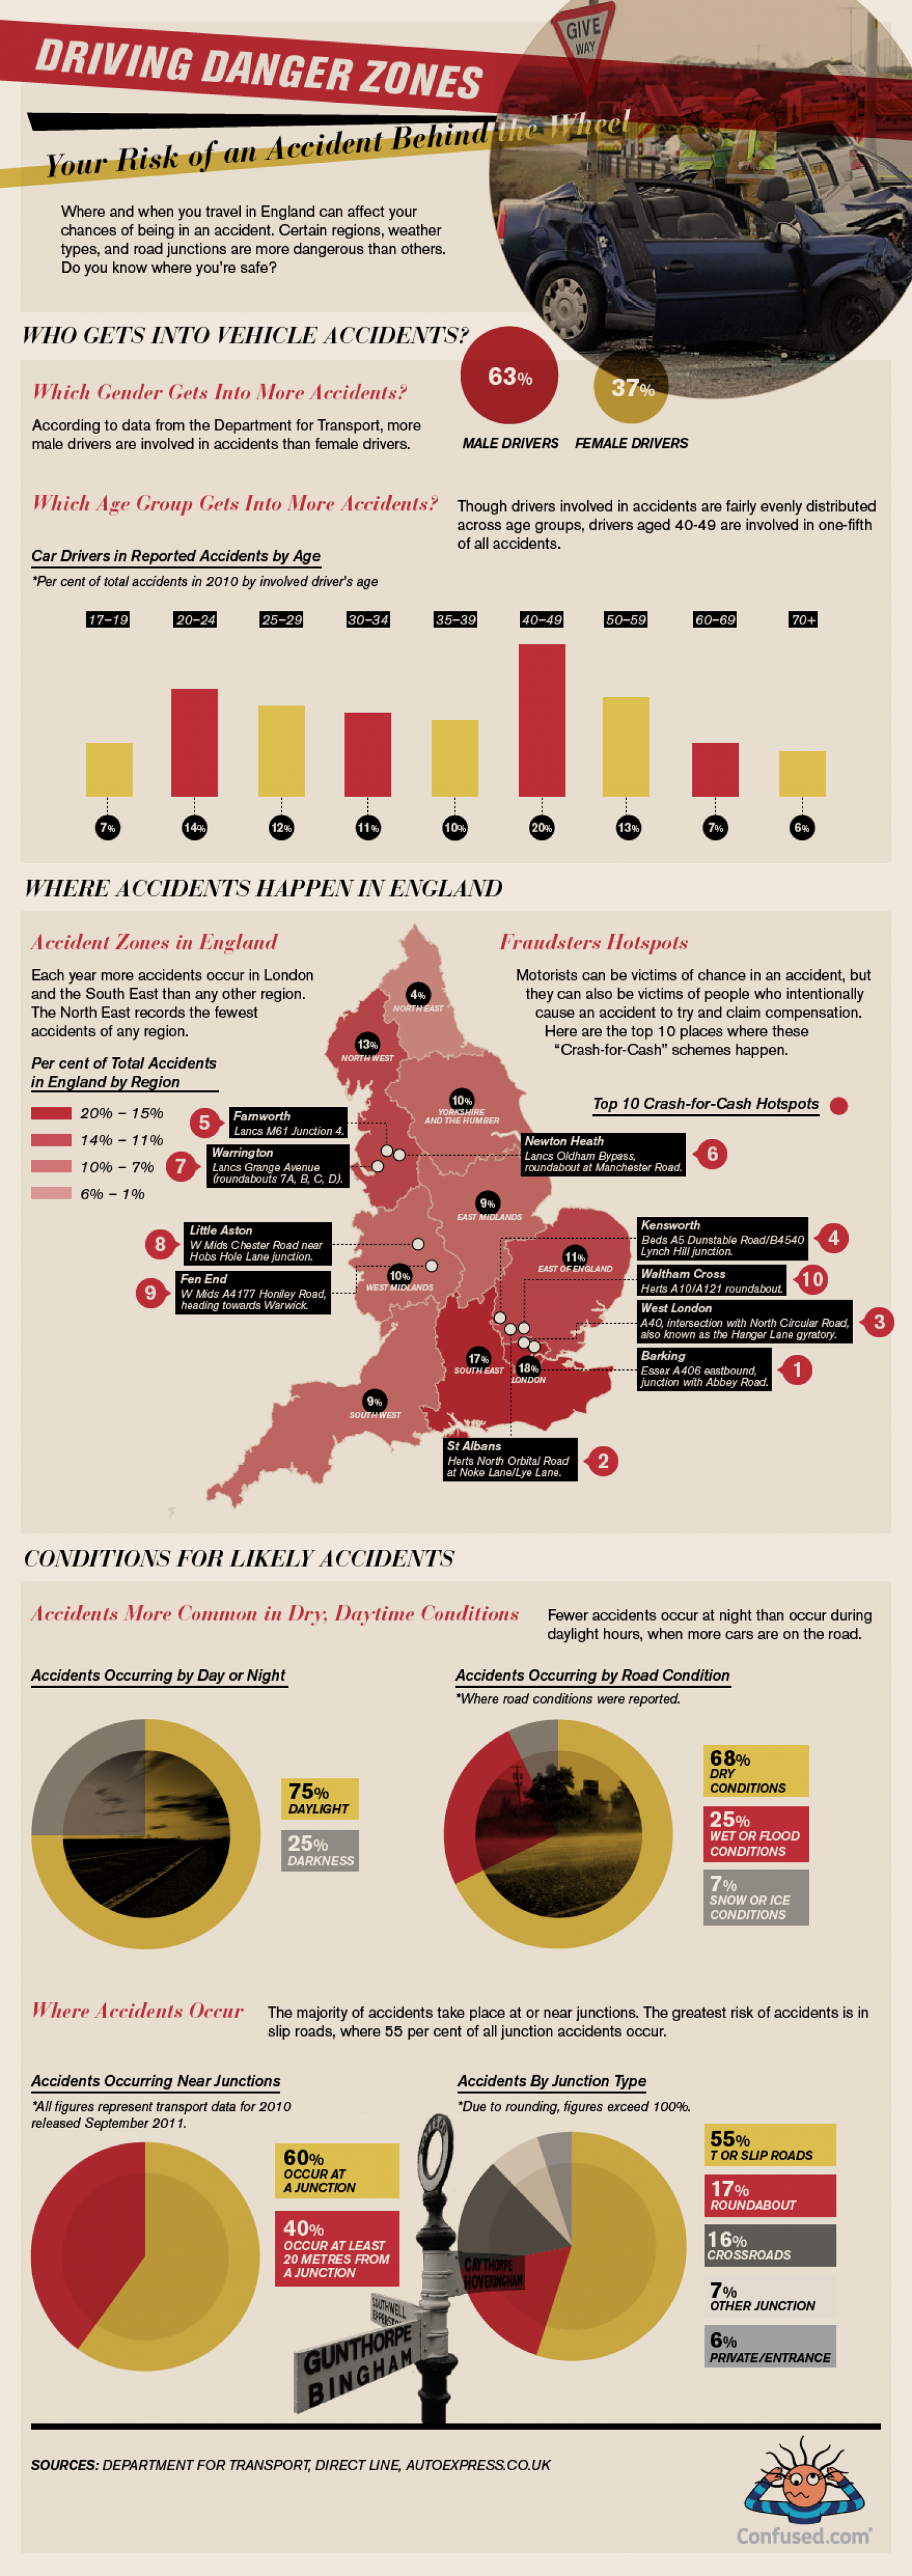 Accident Hotspots and Dangerous Driving Conditions Infographic